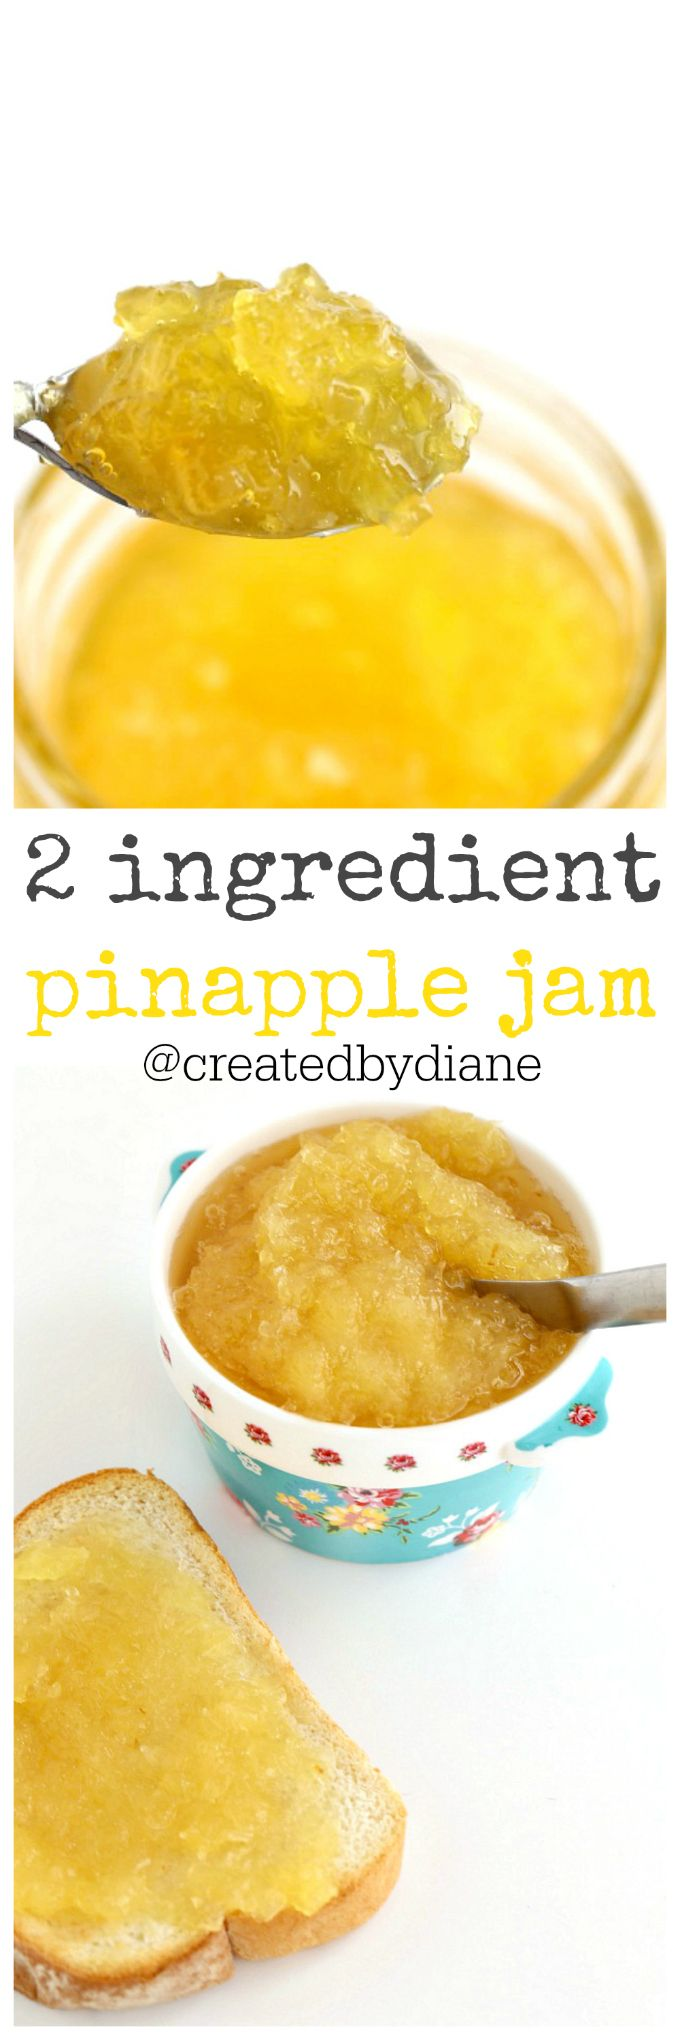 This pineapple jam recipe is so easy, it sets up in the refrigerator so there is no boiling jars and waiting. You can enjoy it as soon as it's chilled.    Spring is upon us and the sweet flavors of fruit are in full swing in my kitchen. I love fruity flavors and pineapple is no exception. I've made this recipe a few times now and each jar just seems to disappear! I really love it on a piece of buttered toast, but the possibilities are endless.   If you LOVE Pineapple, You'll love...